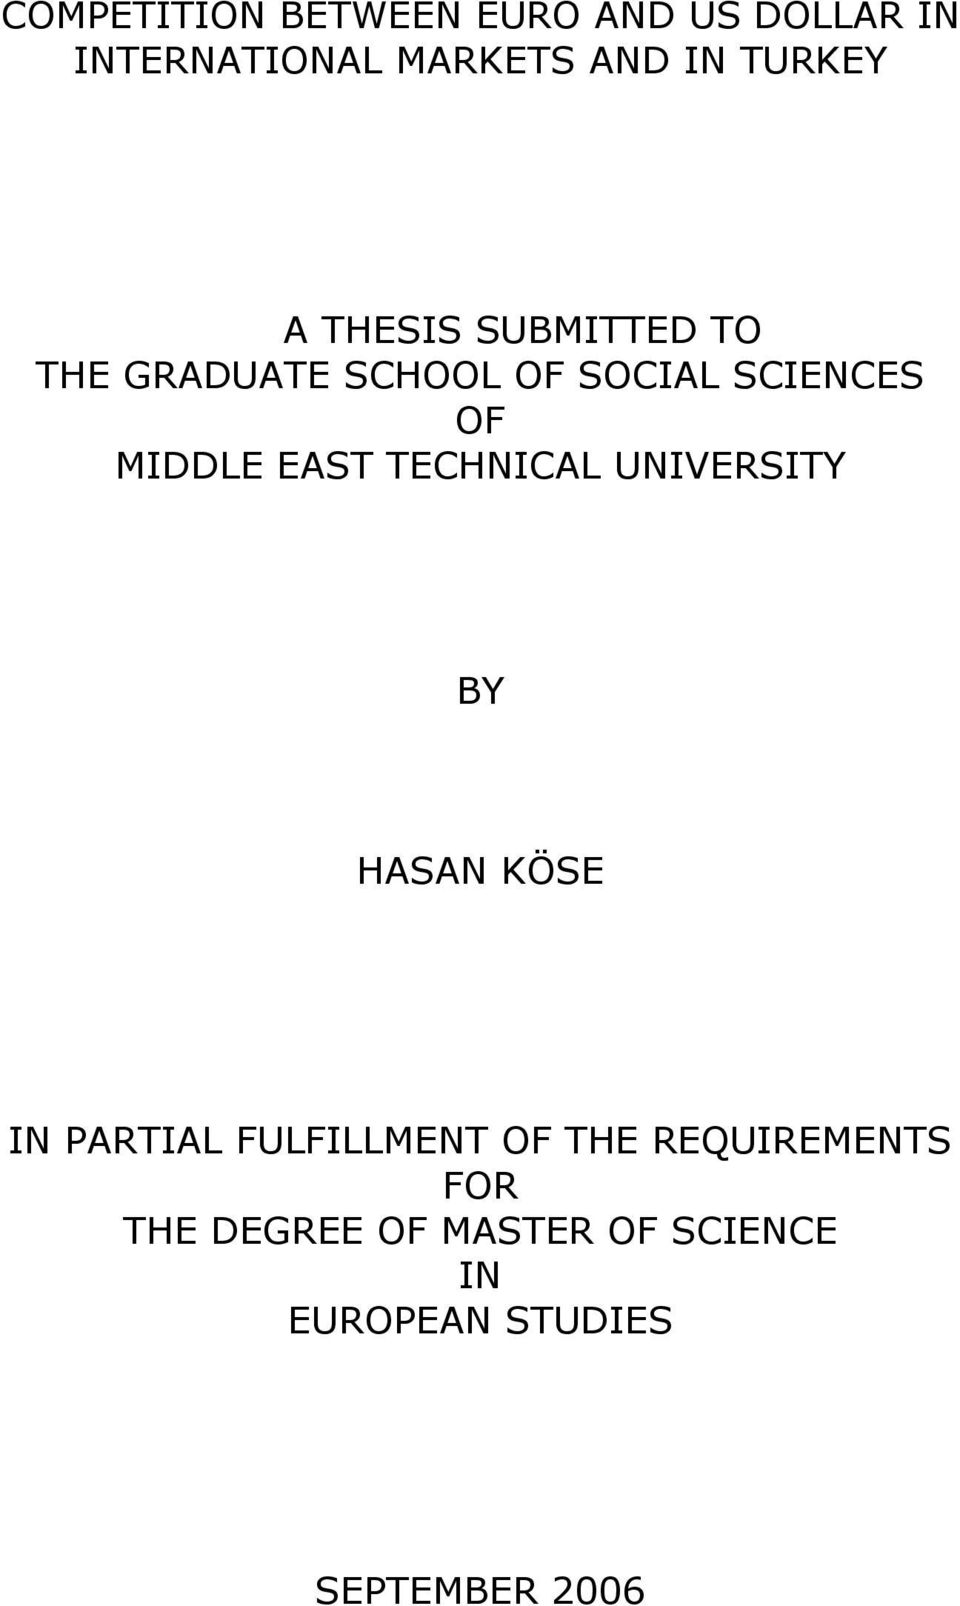 MIDDLE EAST TECHNICAL UNIVERSITY BY HASAN KÖSE IN PARTIAL FULFILLMENT OF